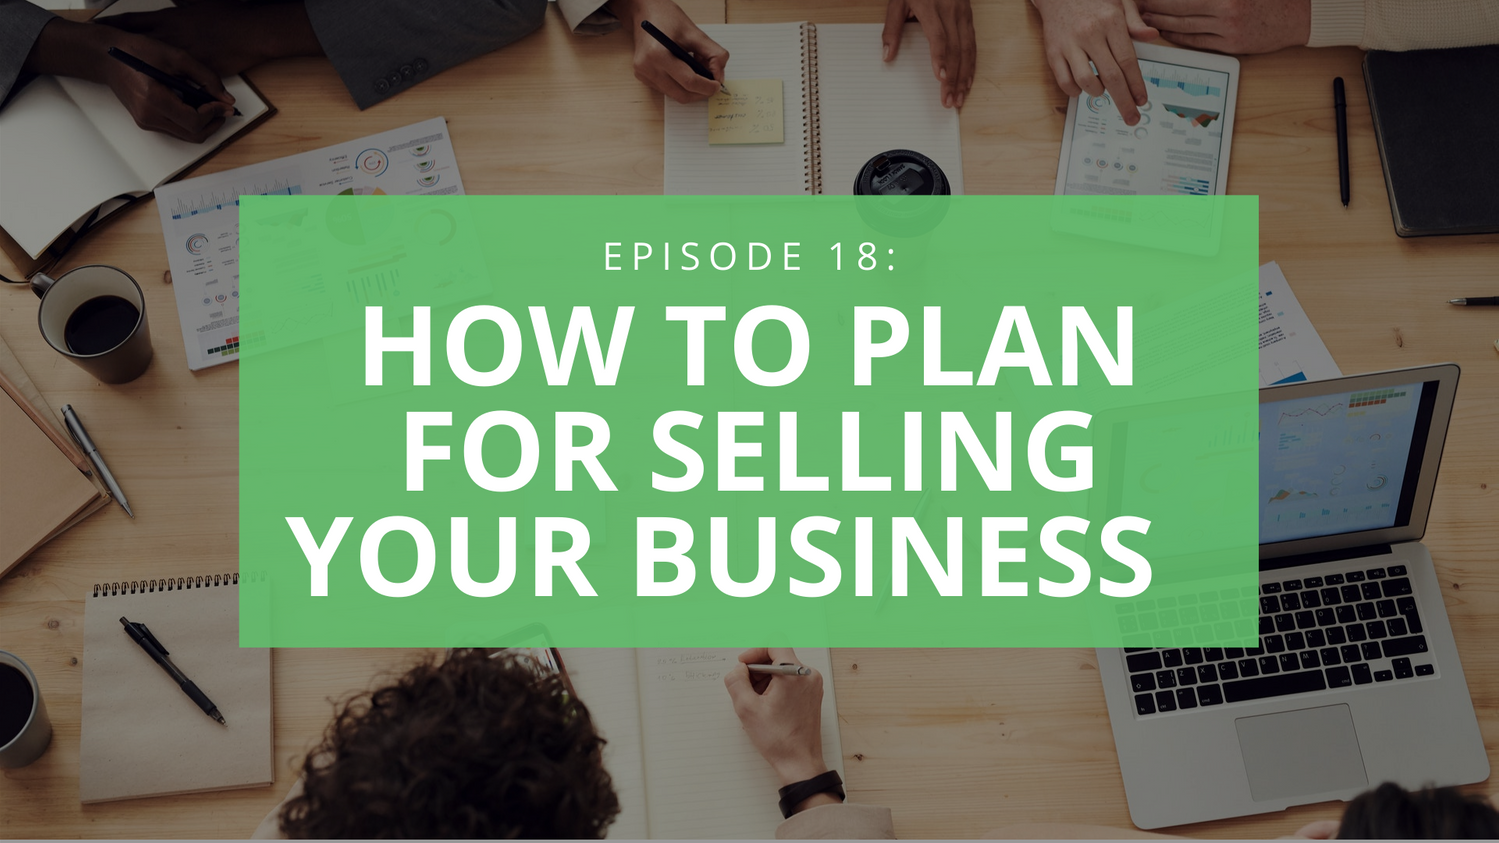 What You Need To Know About Selling Your Business